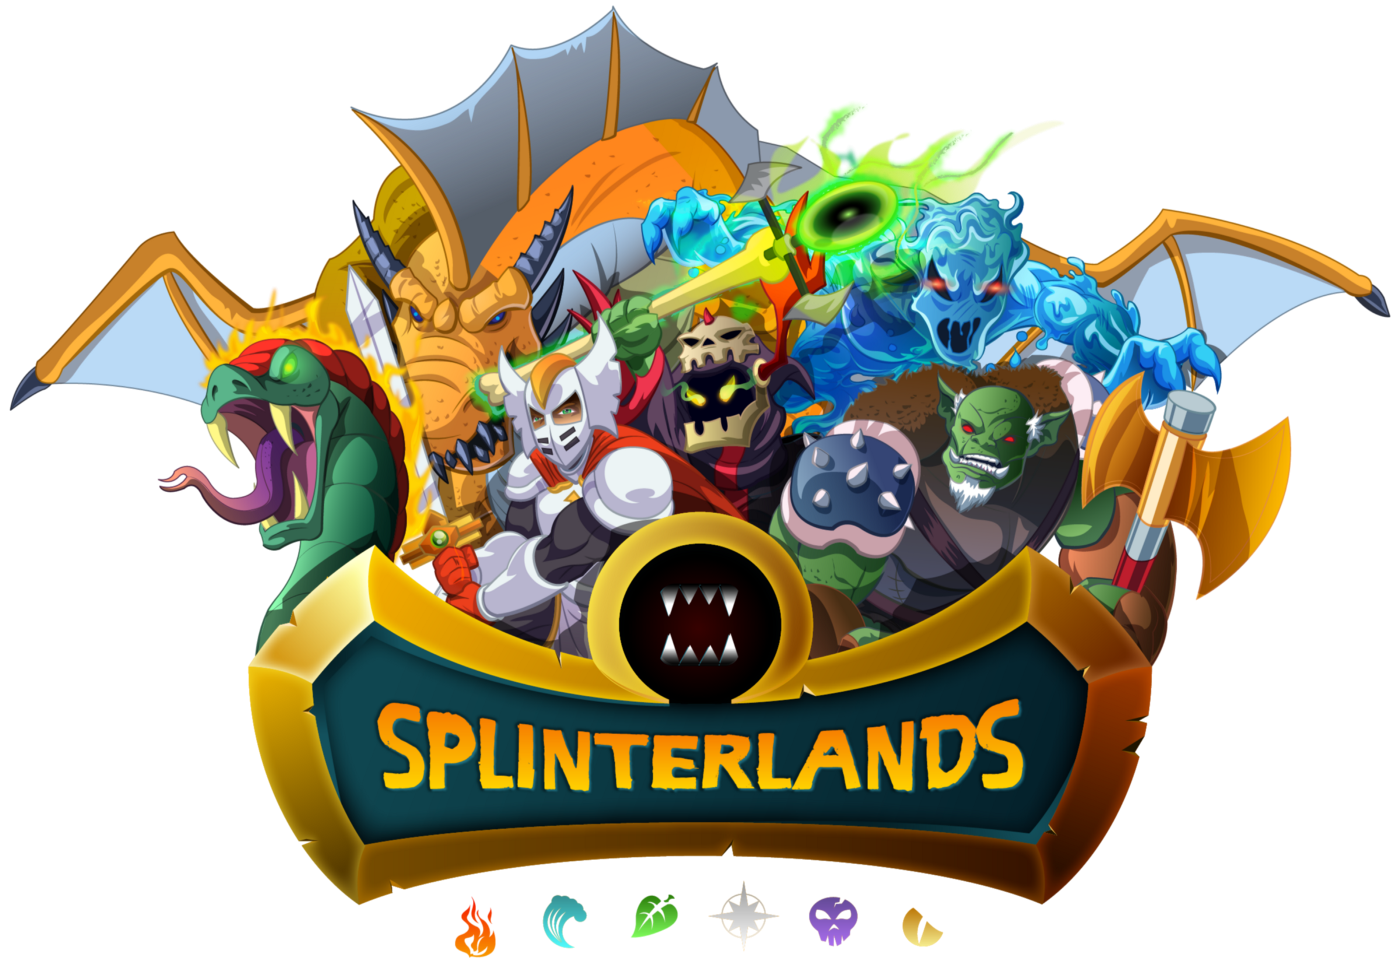 Splinterlands logo with creatures from game